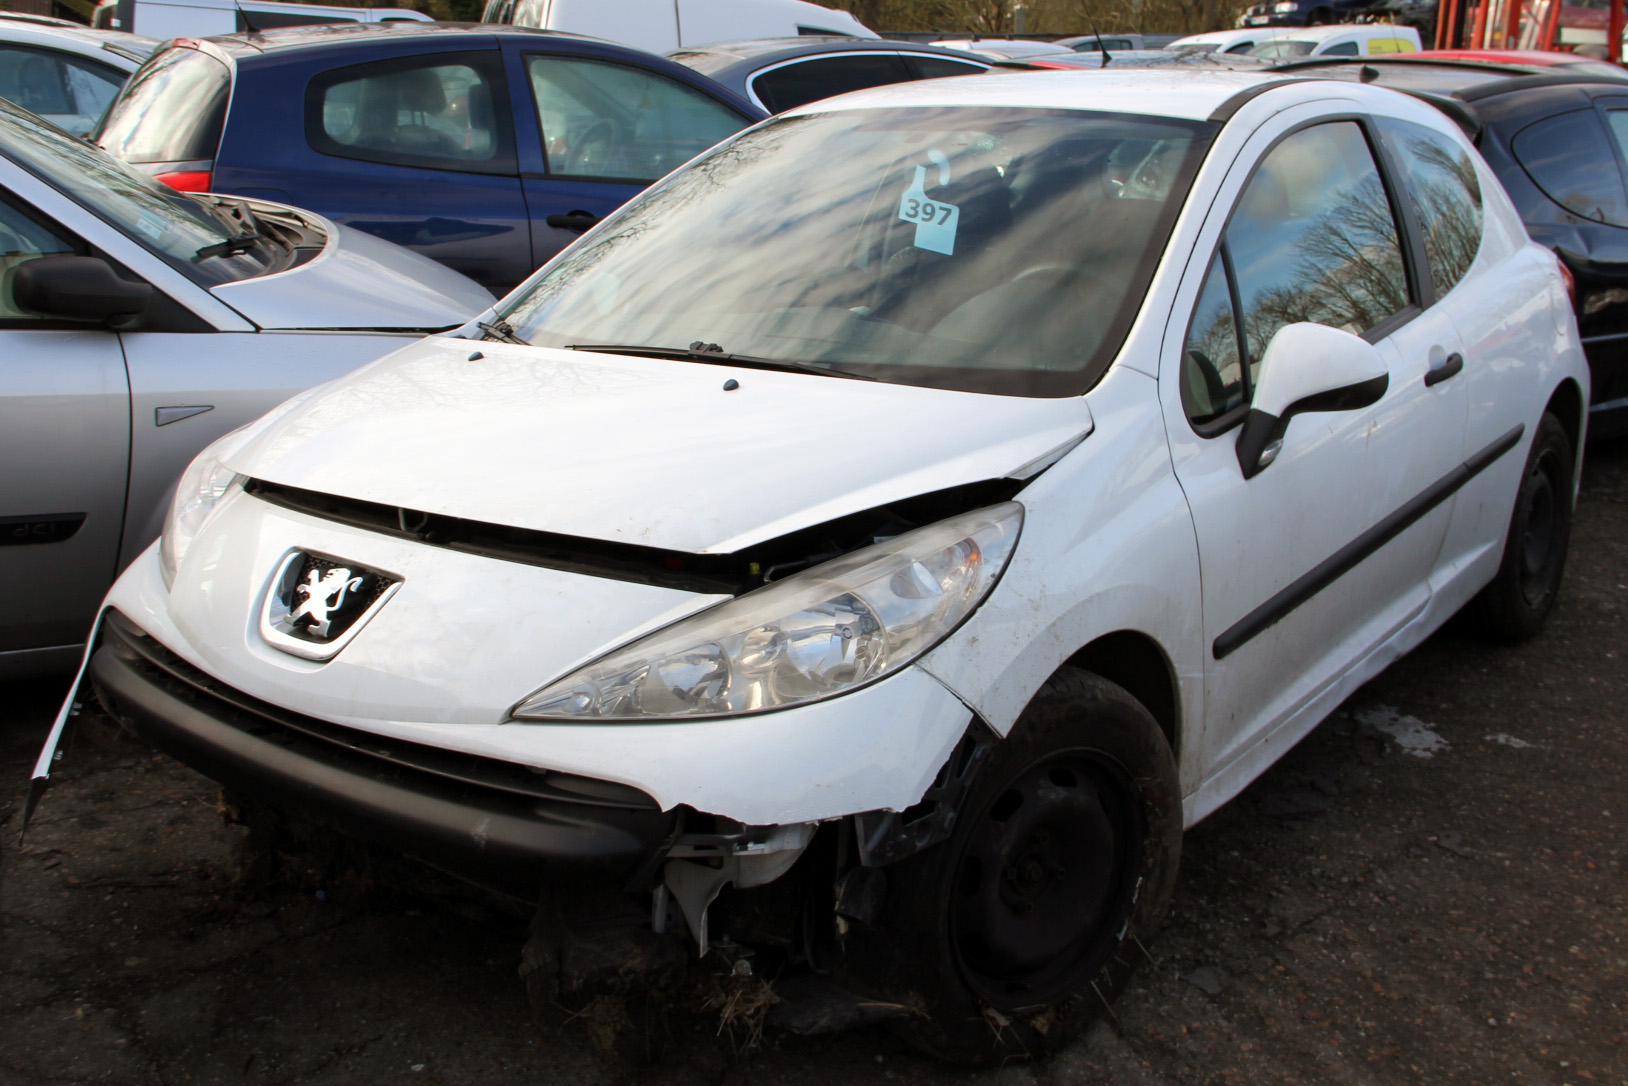 Peugeot 207 1.4 hdi 70 accidentée